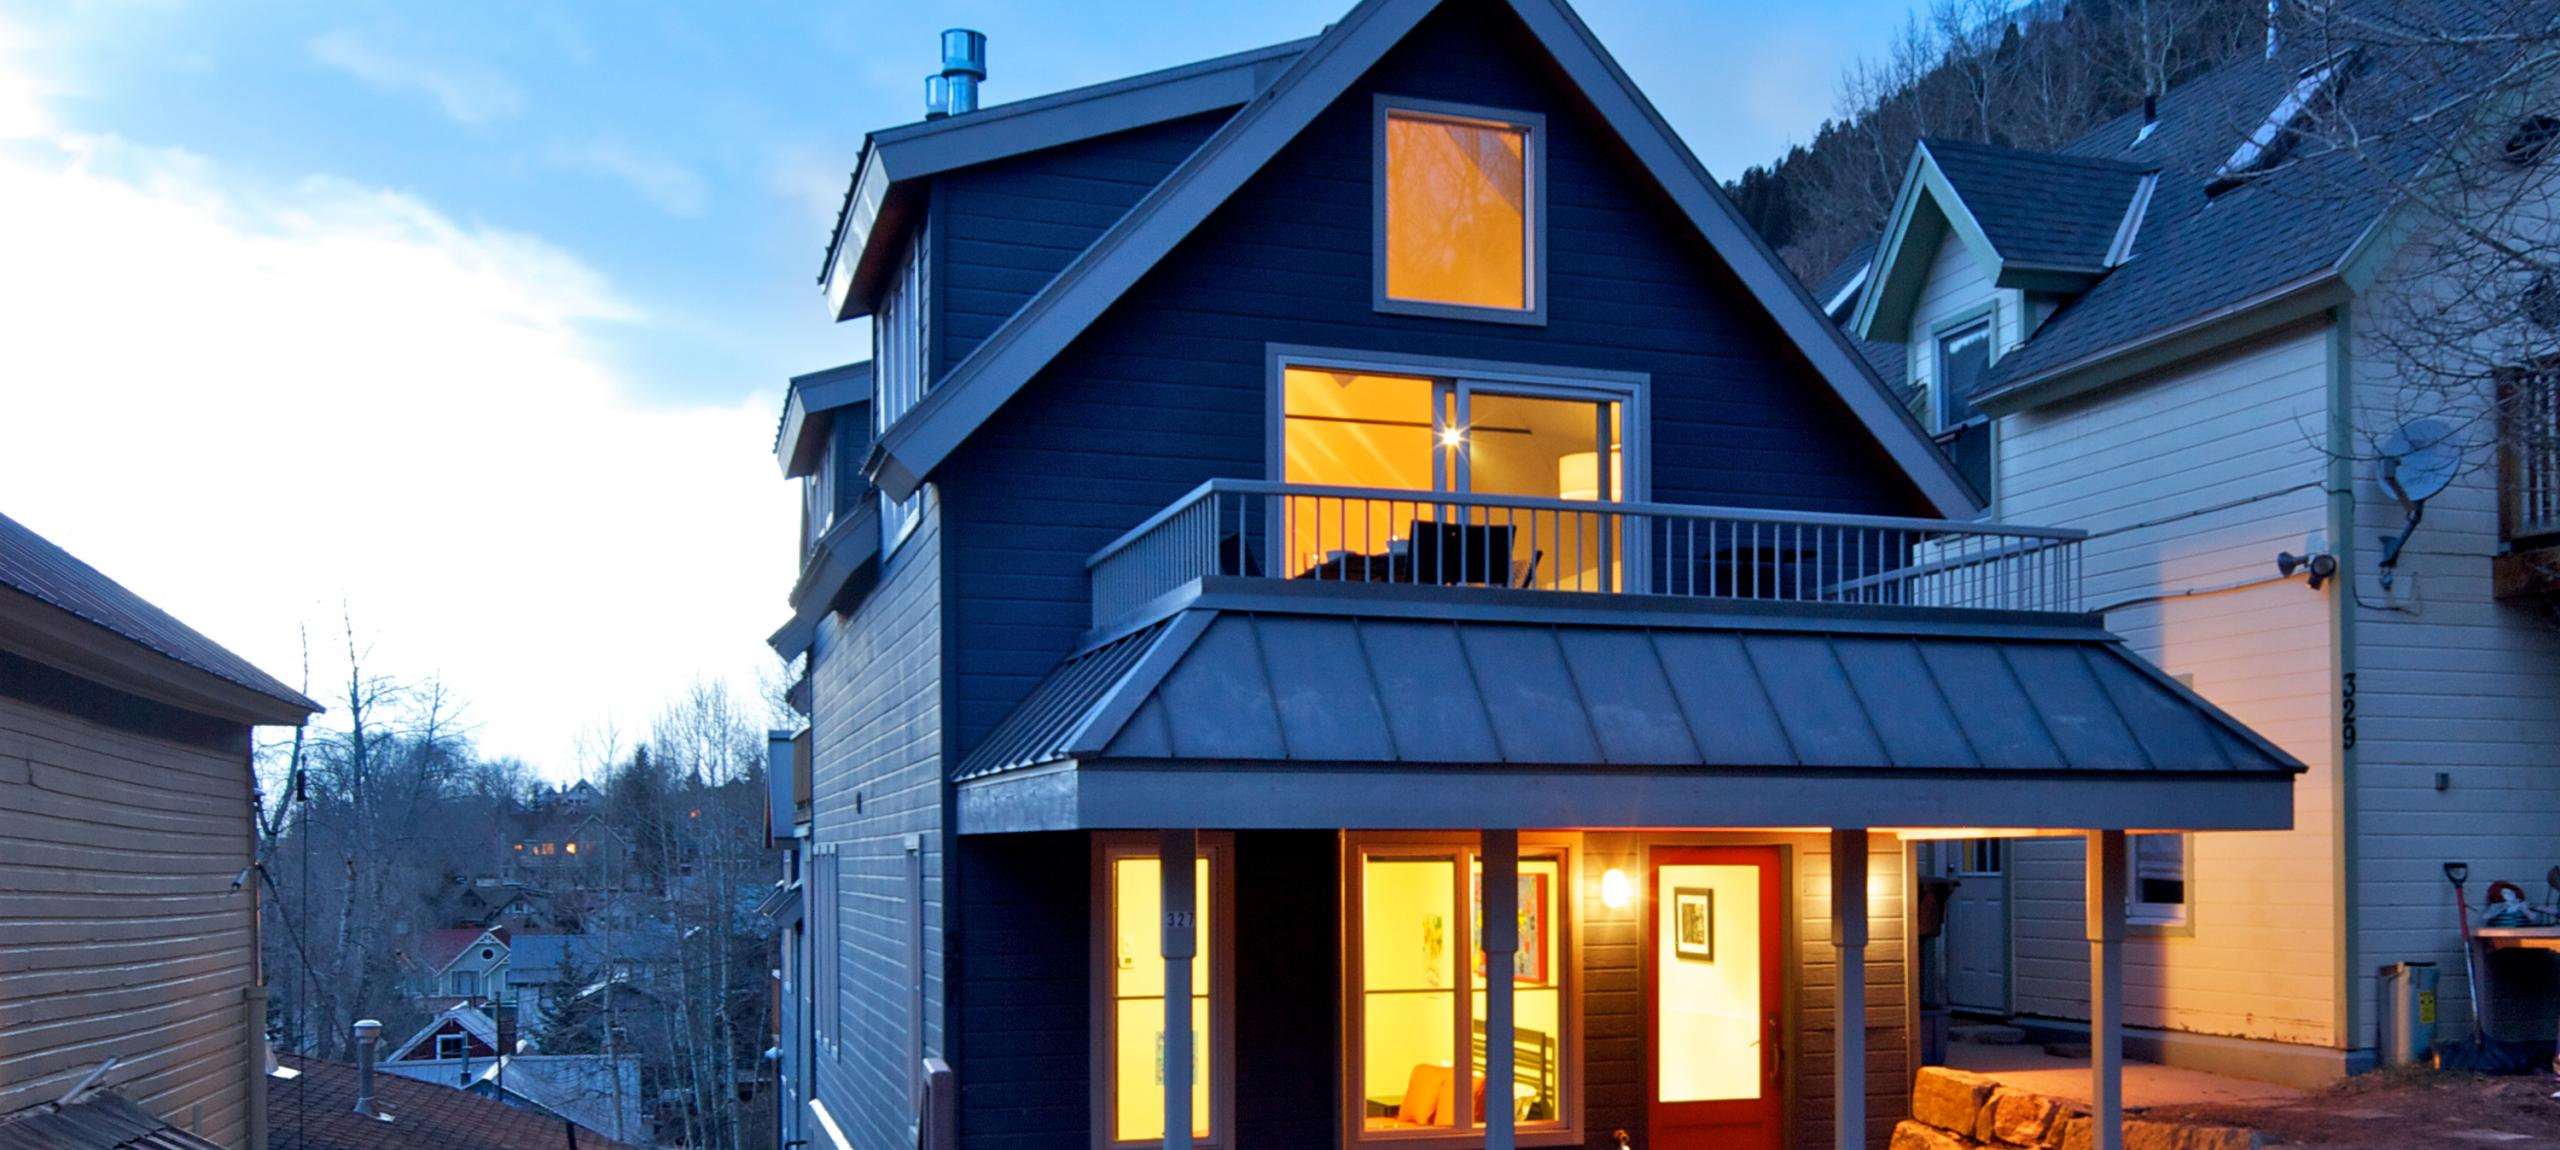 Telluride-rentals-north-willow-sunset-exterior